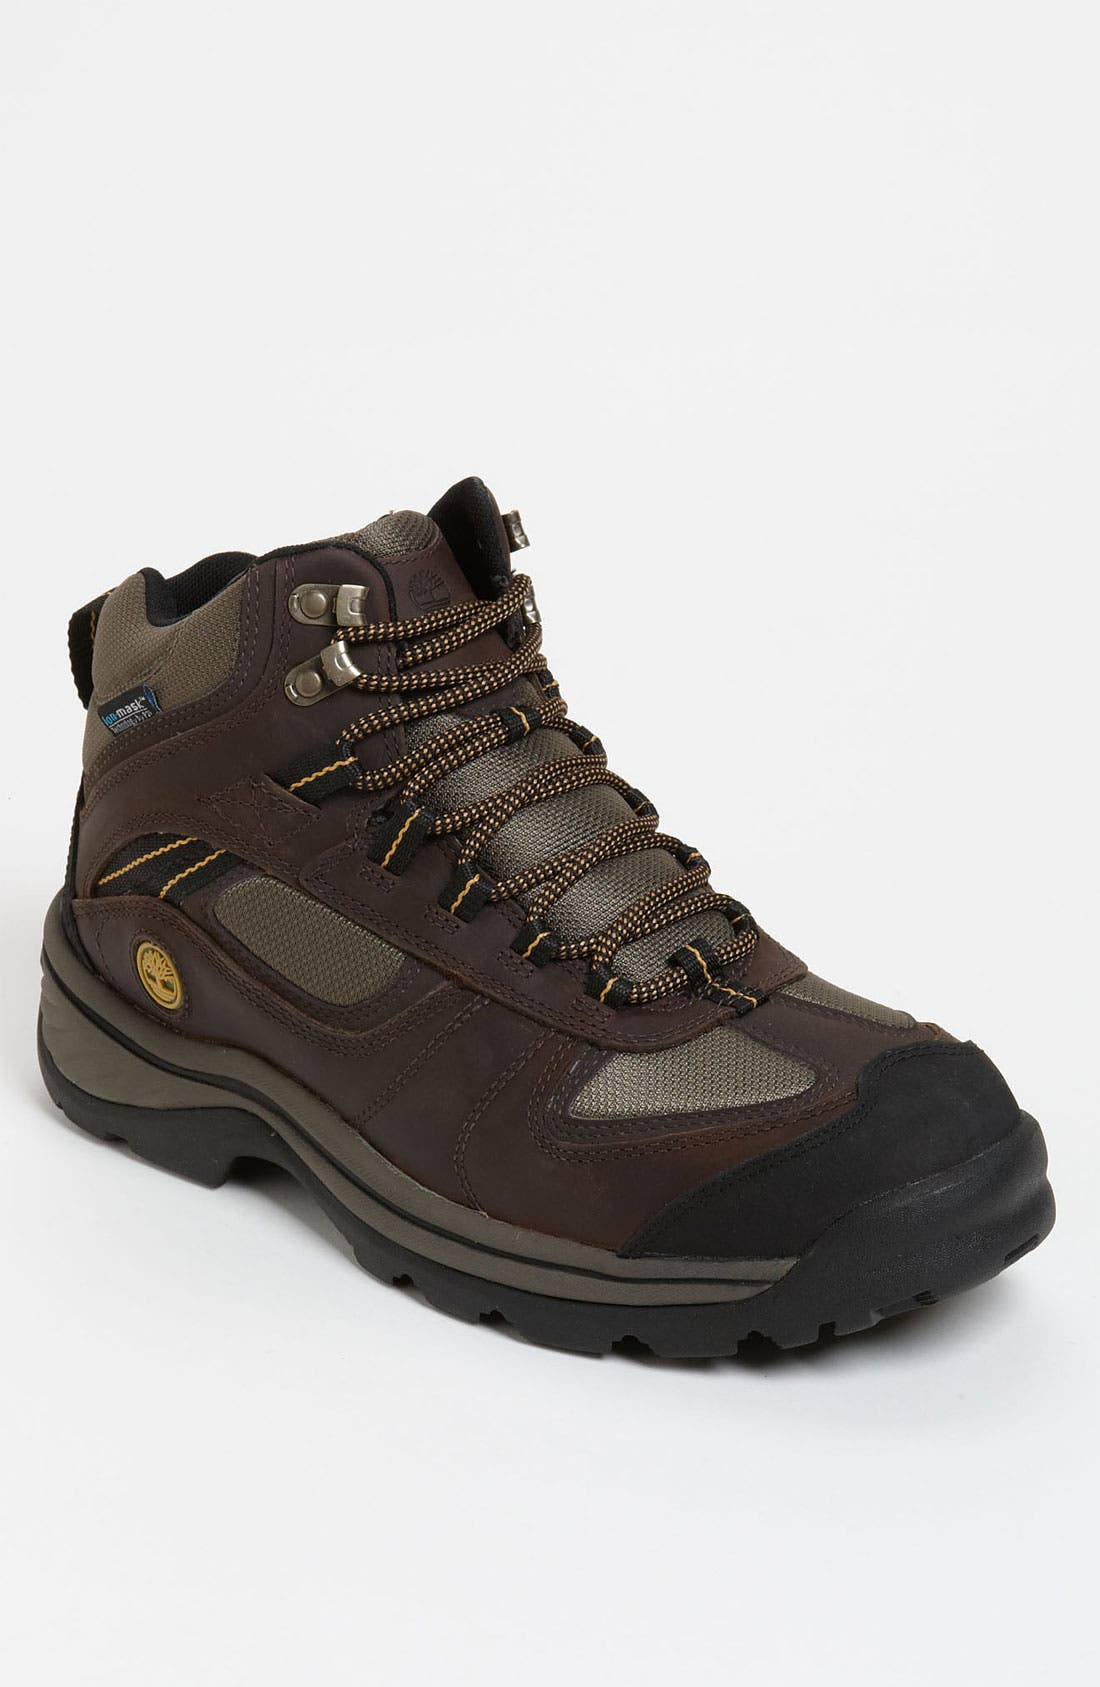 Main Image - Timberland 'Chochorua Trail FTP' Hiking Boot (Men)